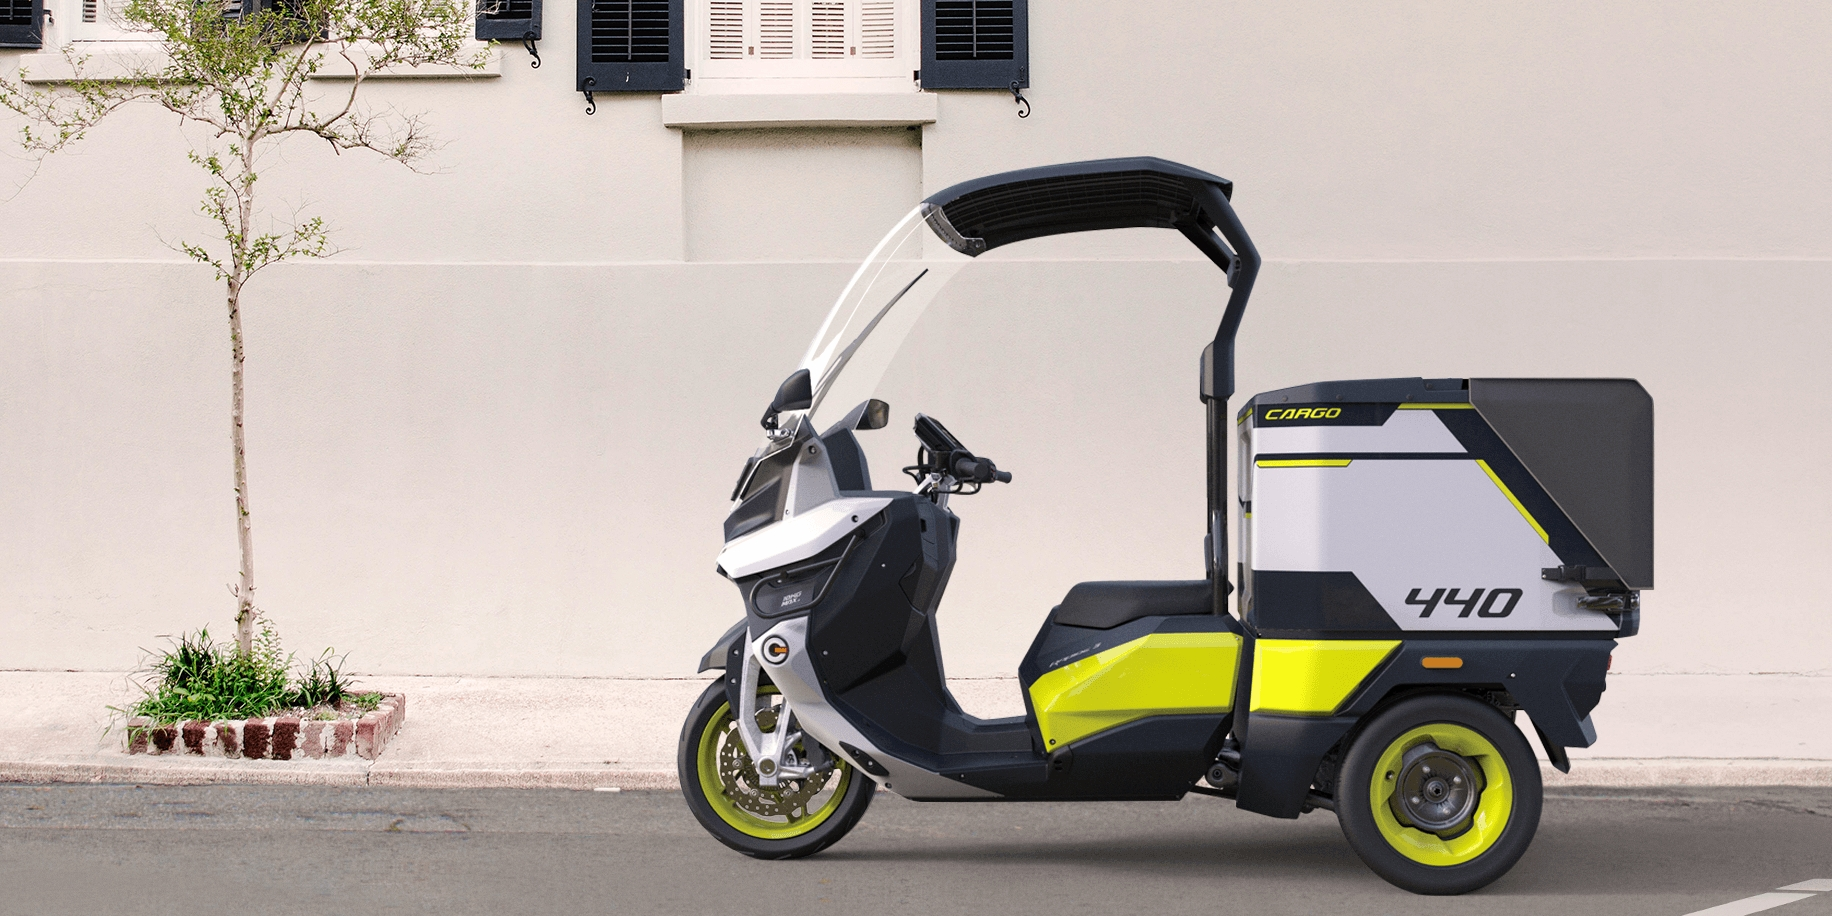 RAPIDE 3 commercial electric cargo scooter can charge up to 80% in 15 minutes